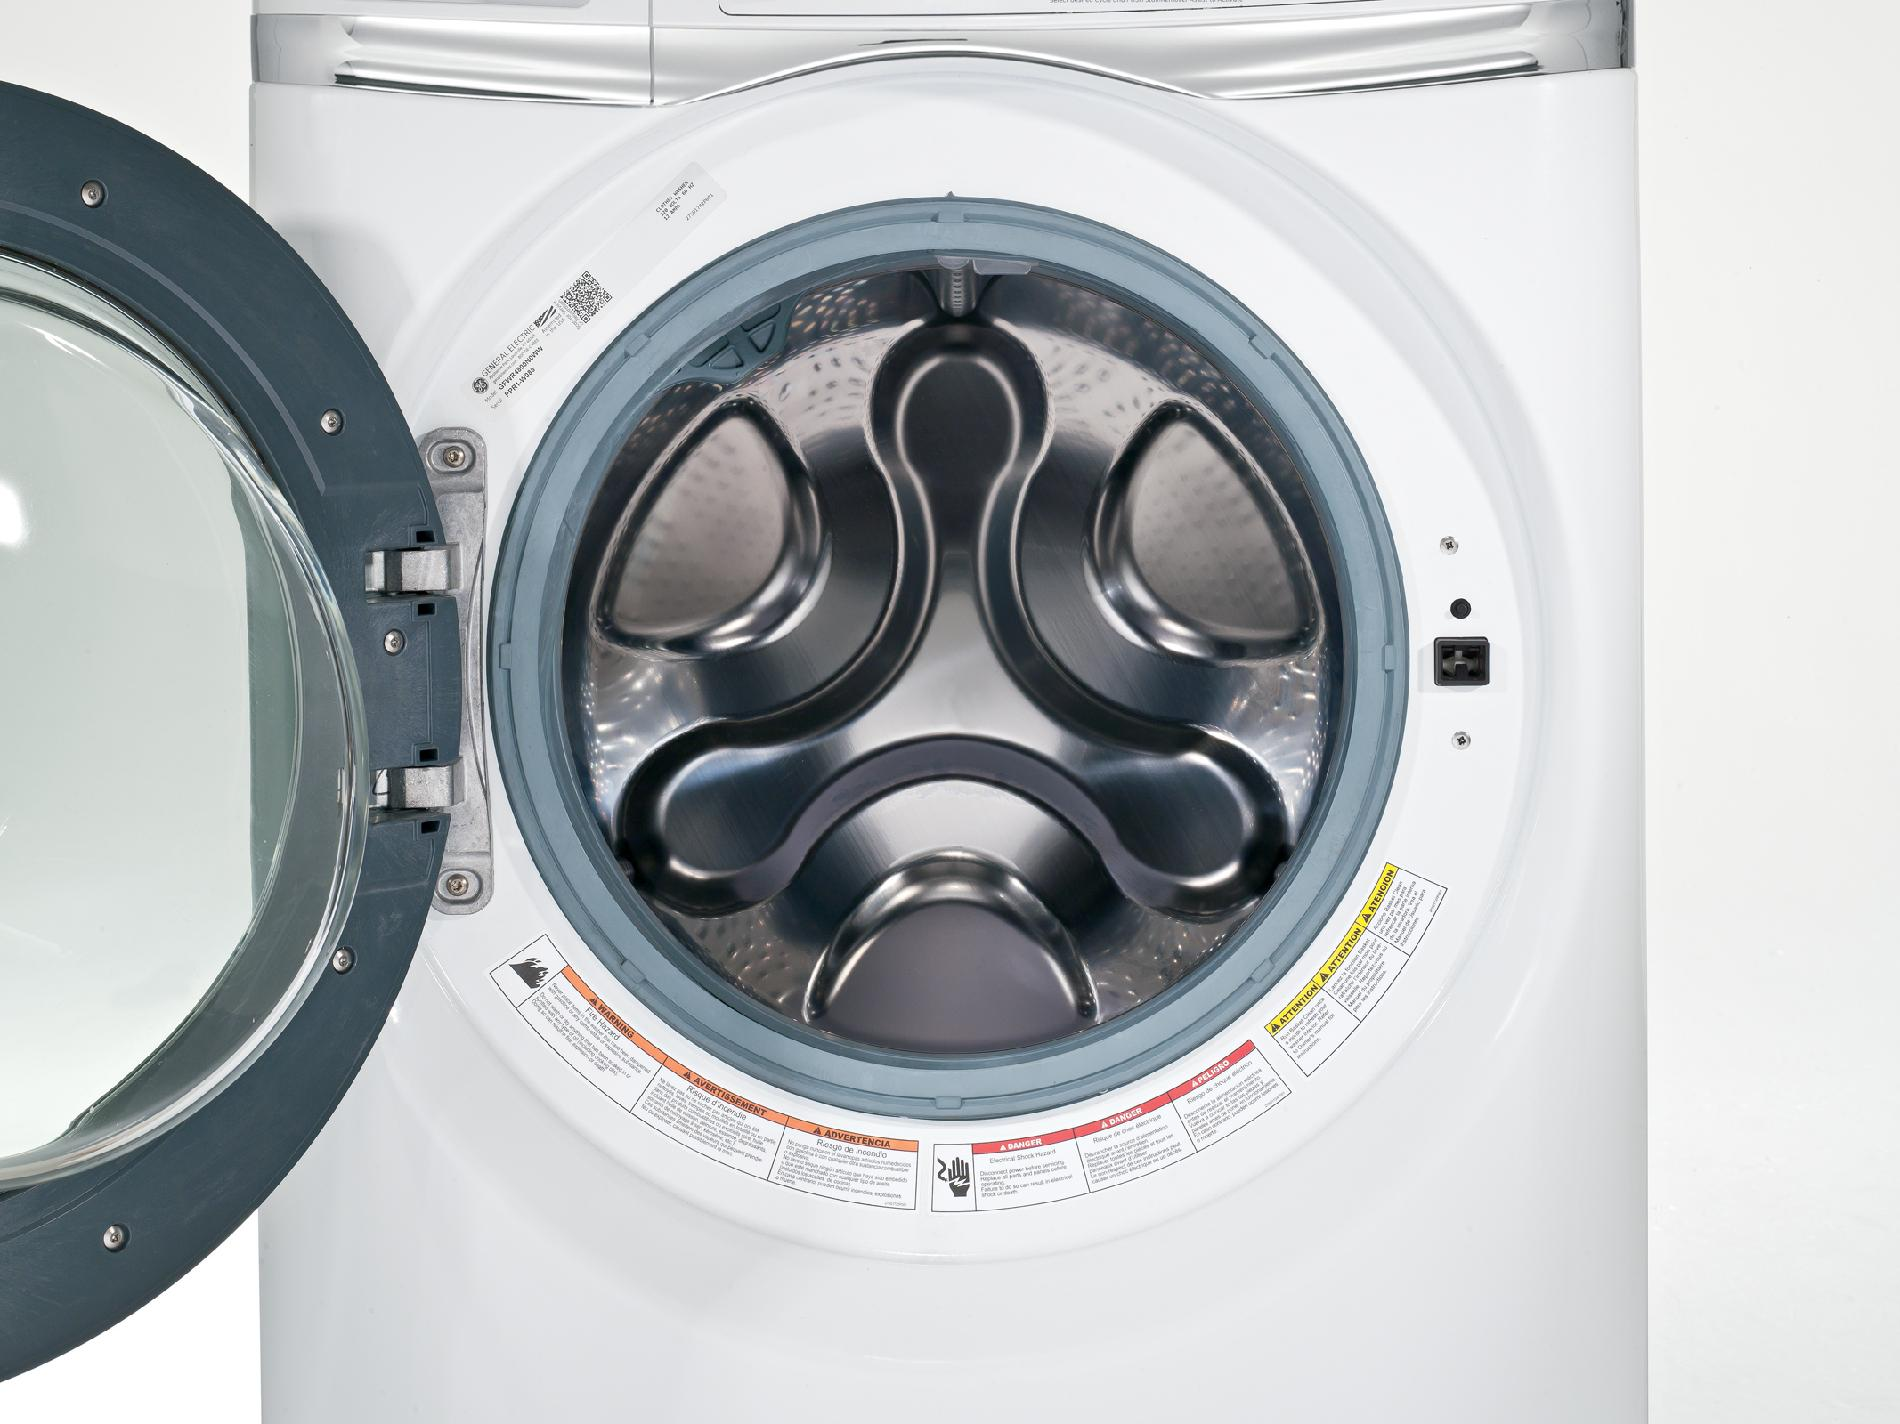 GE Appliances GFWS2600FWW 4.5 cu. ft. Front-Load Washer - White GFWS2600FWW